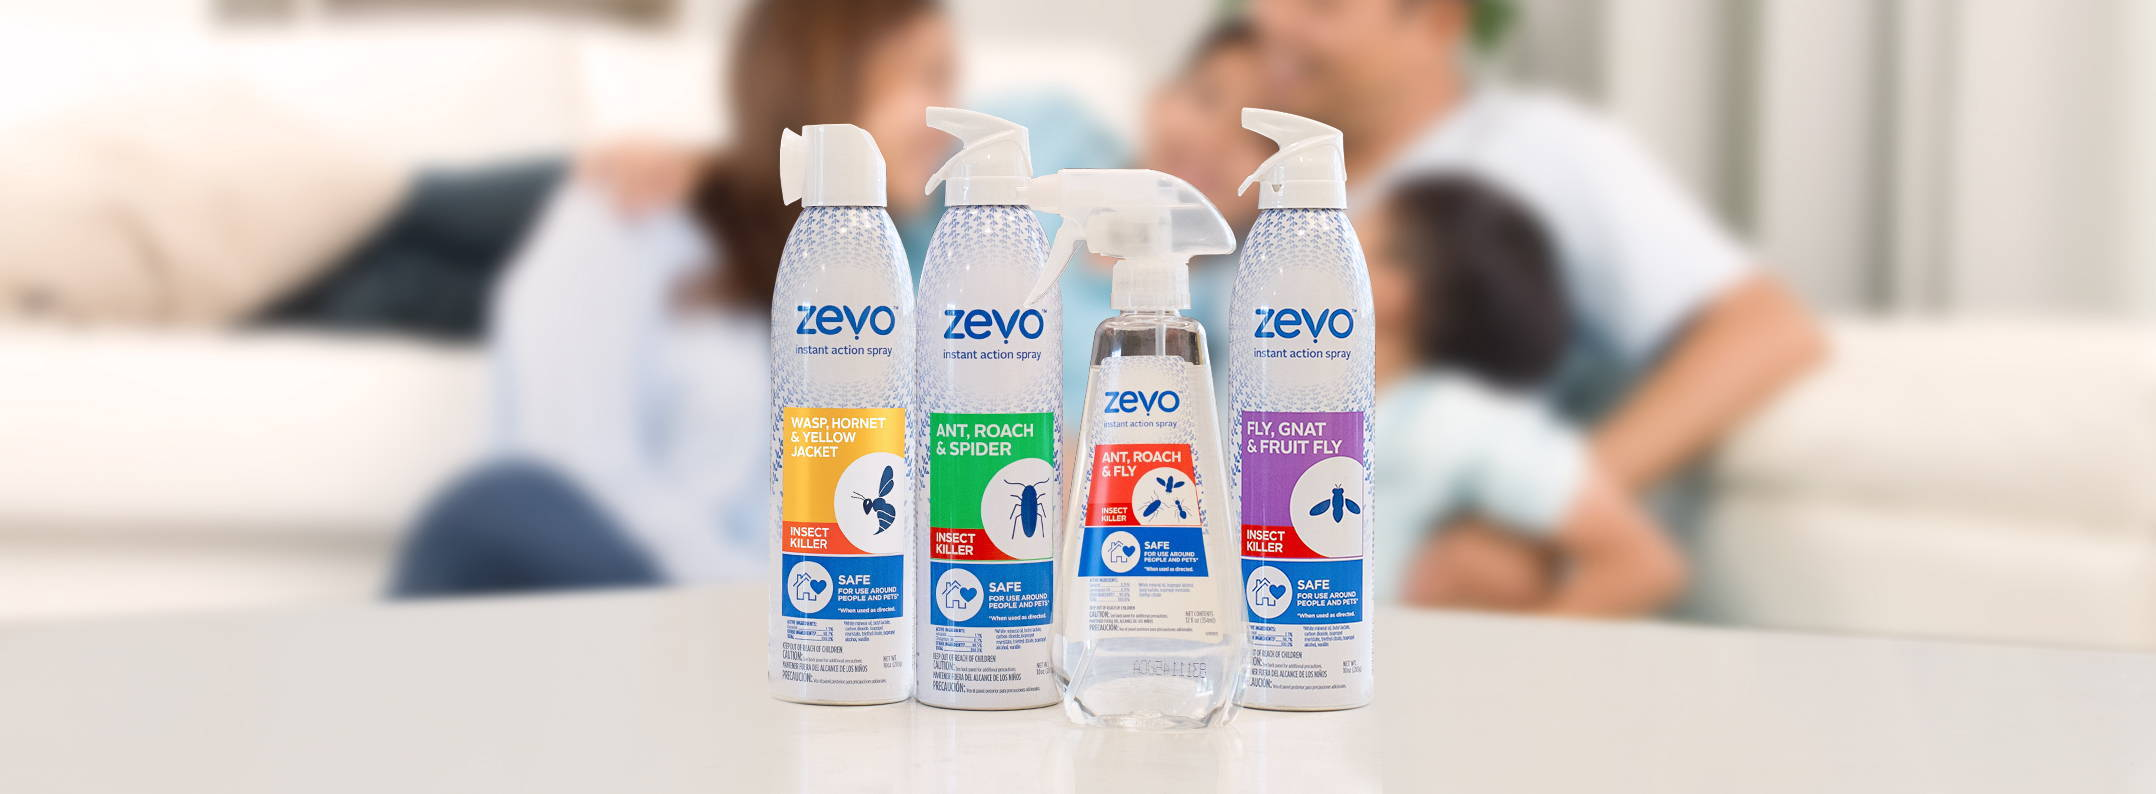 Zevo Insect Sprays